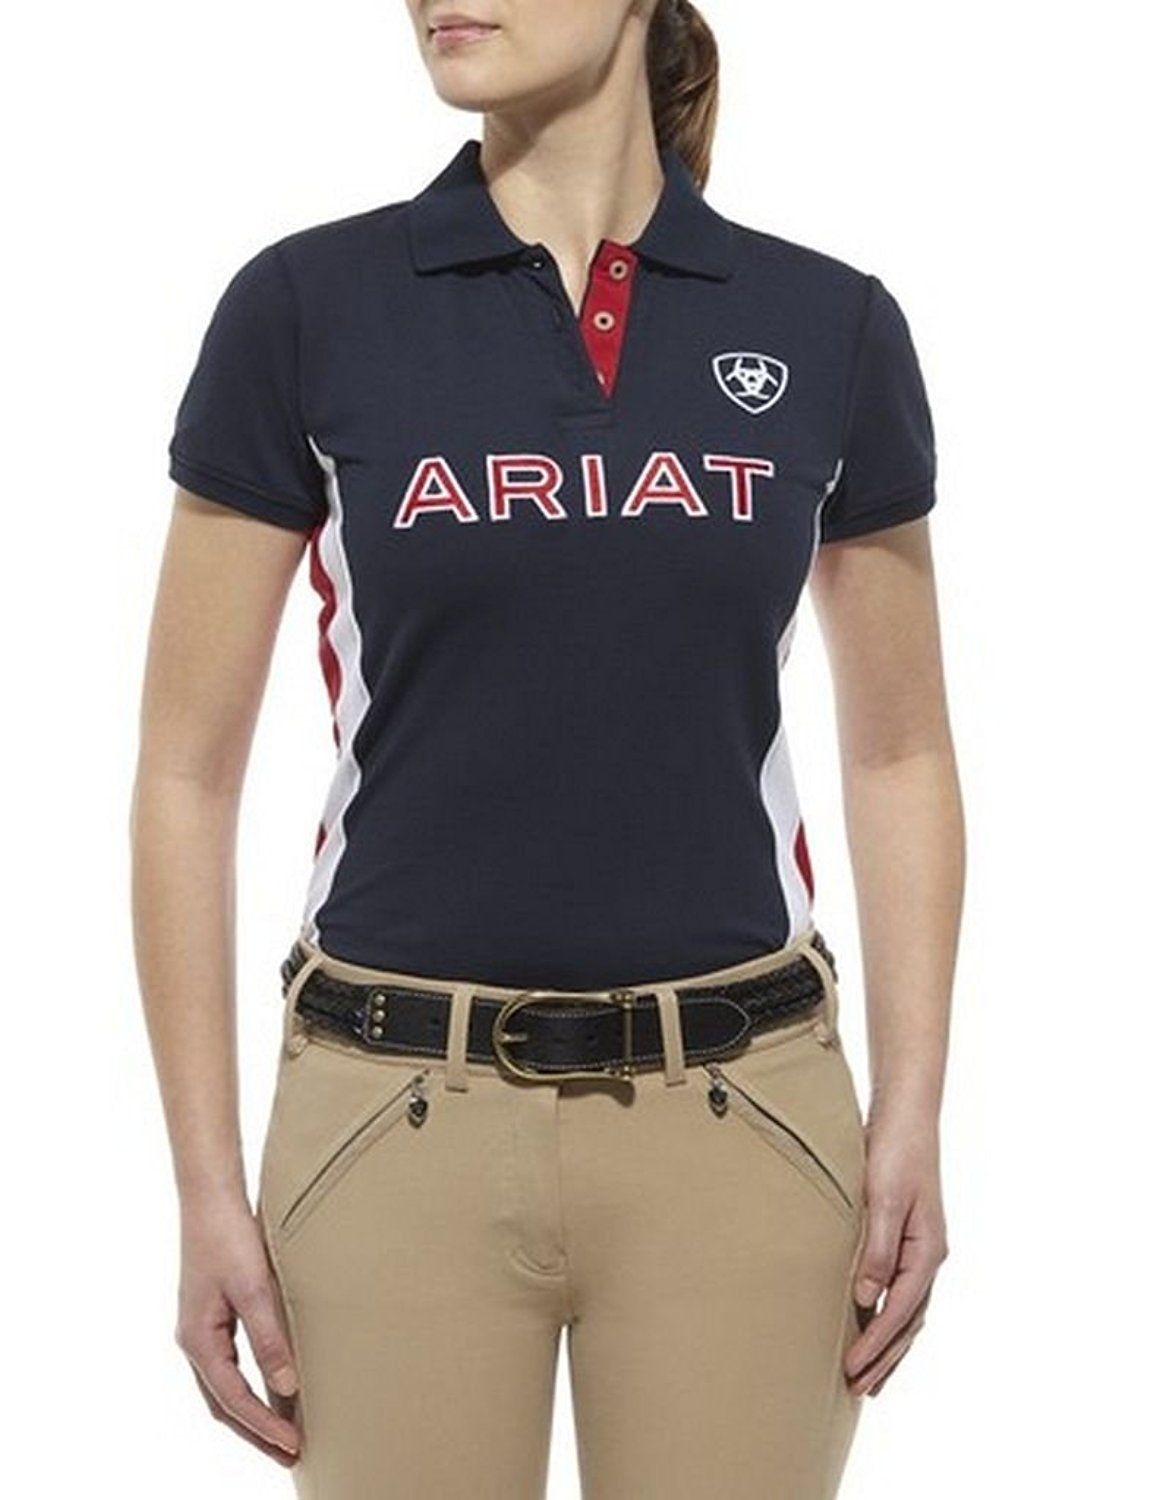 Ariat Women's Short Sleeve Team Polo >>> This is an Amazon ...